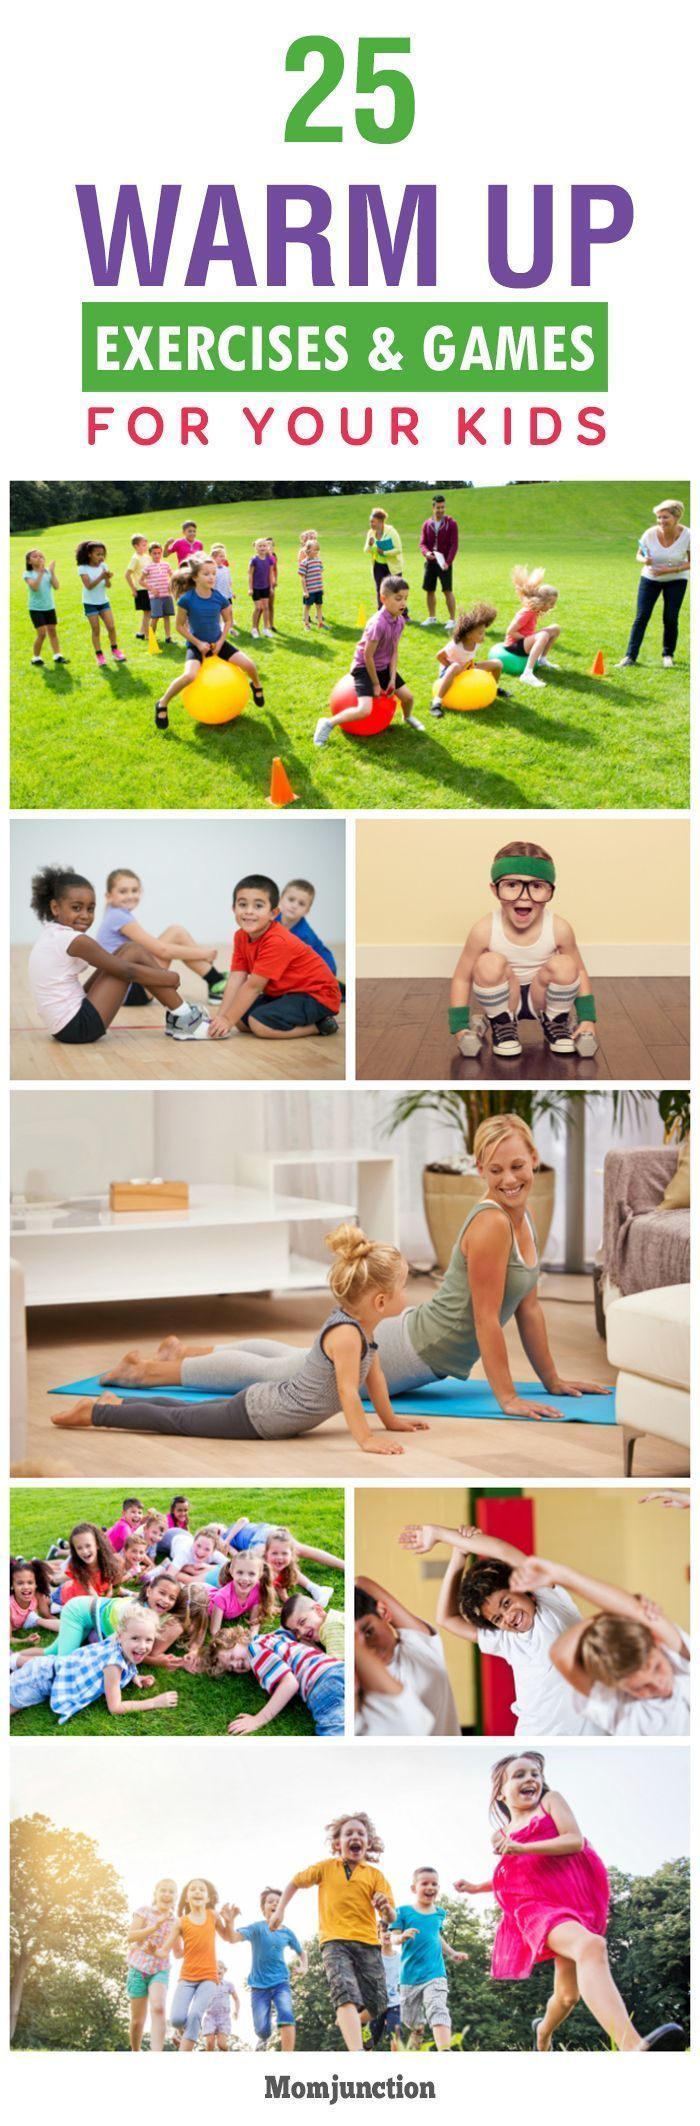 Top 25 Warm Up Exercises & Games For Kids